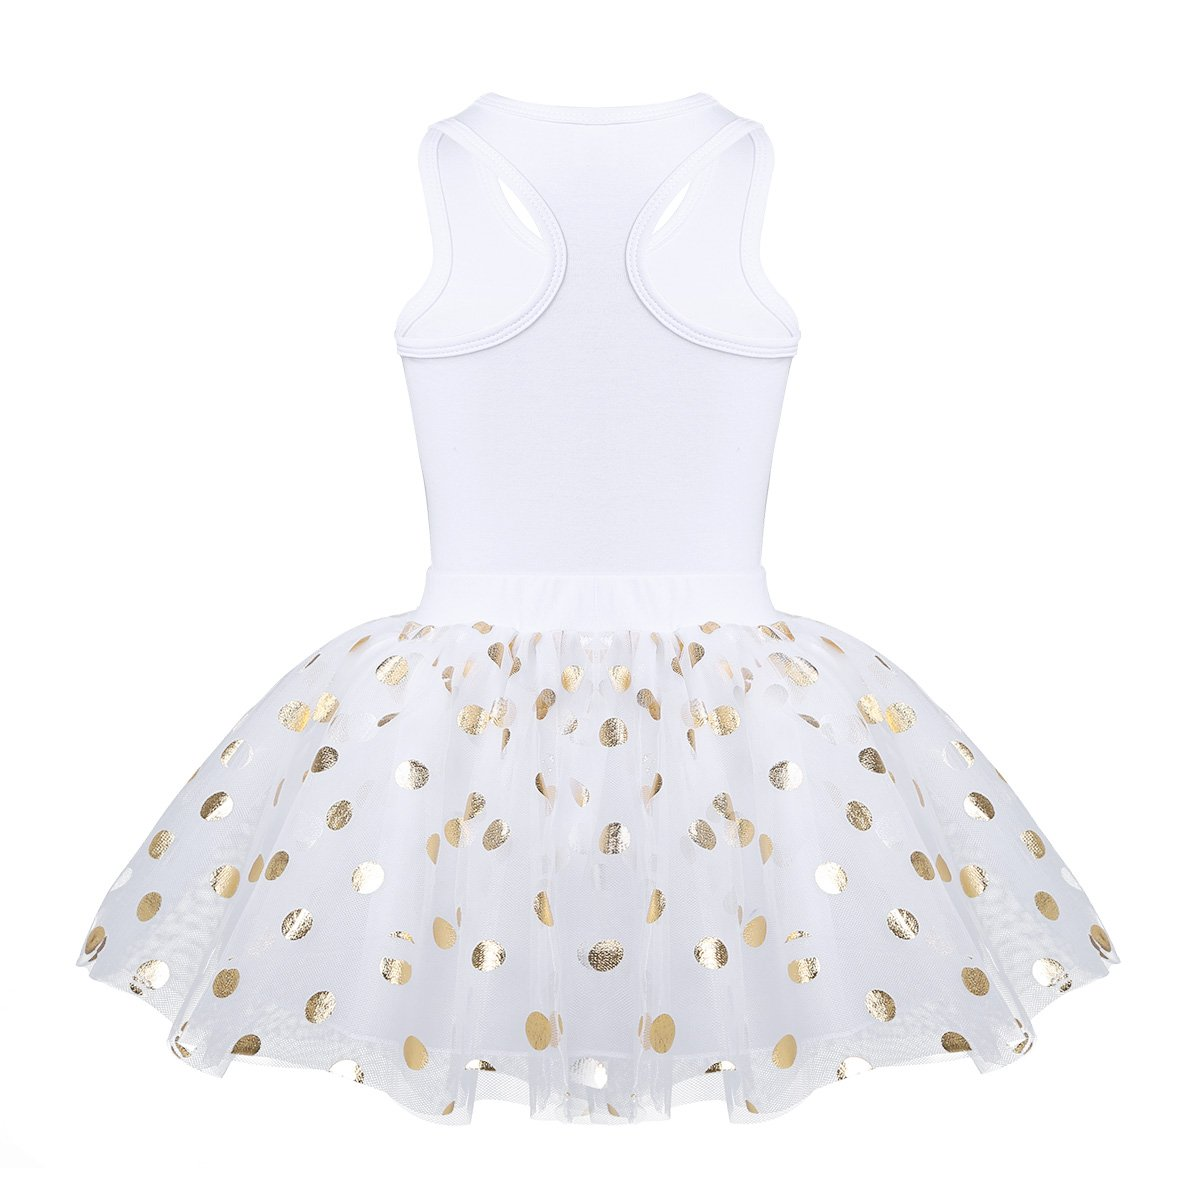 dPois Little Princess Girls' First Birthday Outfits Glittery Monogram Tank Top with Polka Dot Skirts 2 Pieces Set White 4-5 by dPois (Image #4)